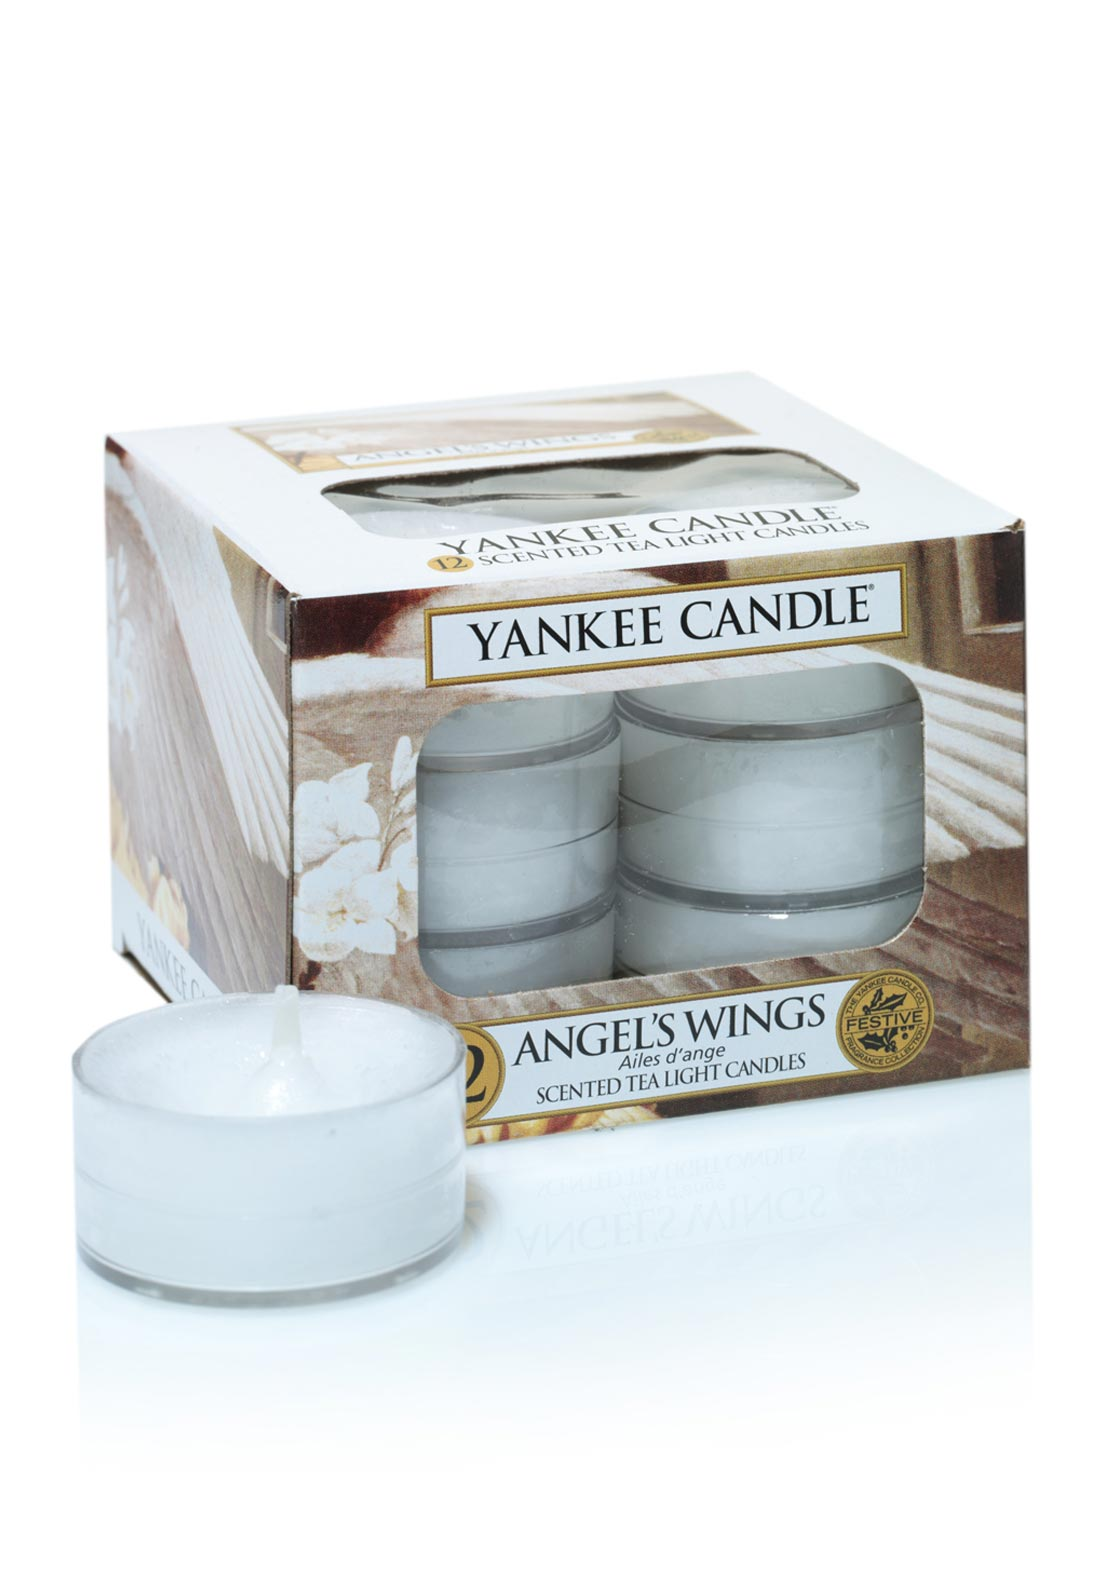 Yankee Candle 12 Scented Tea Light Candles, Angels's Wings